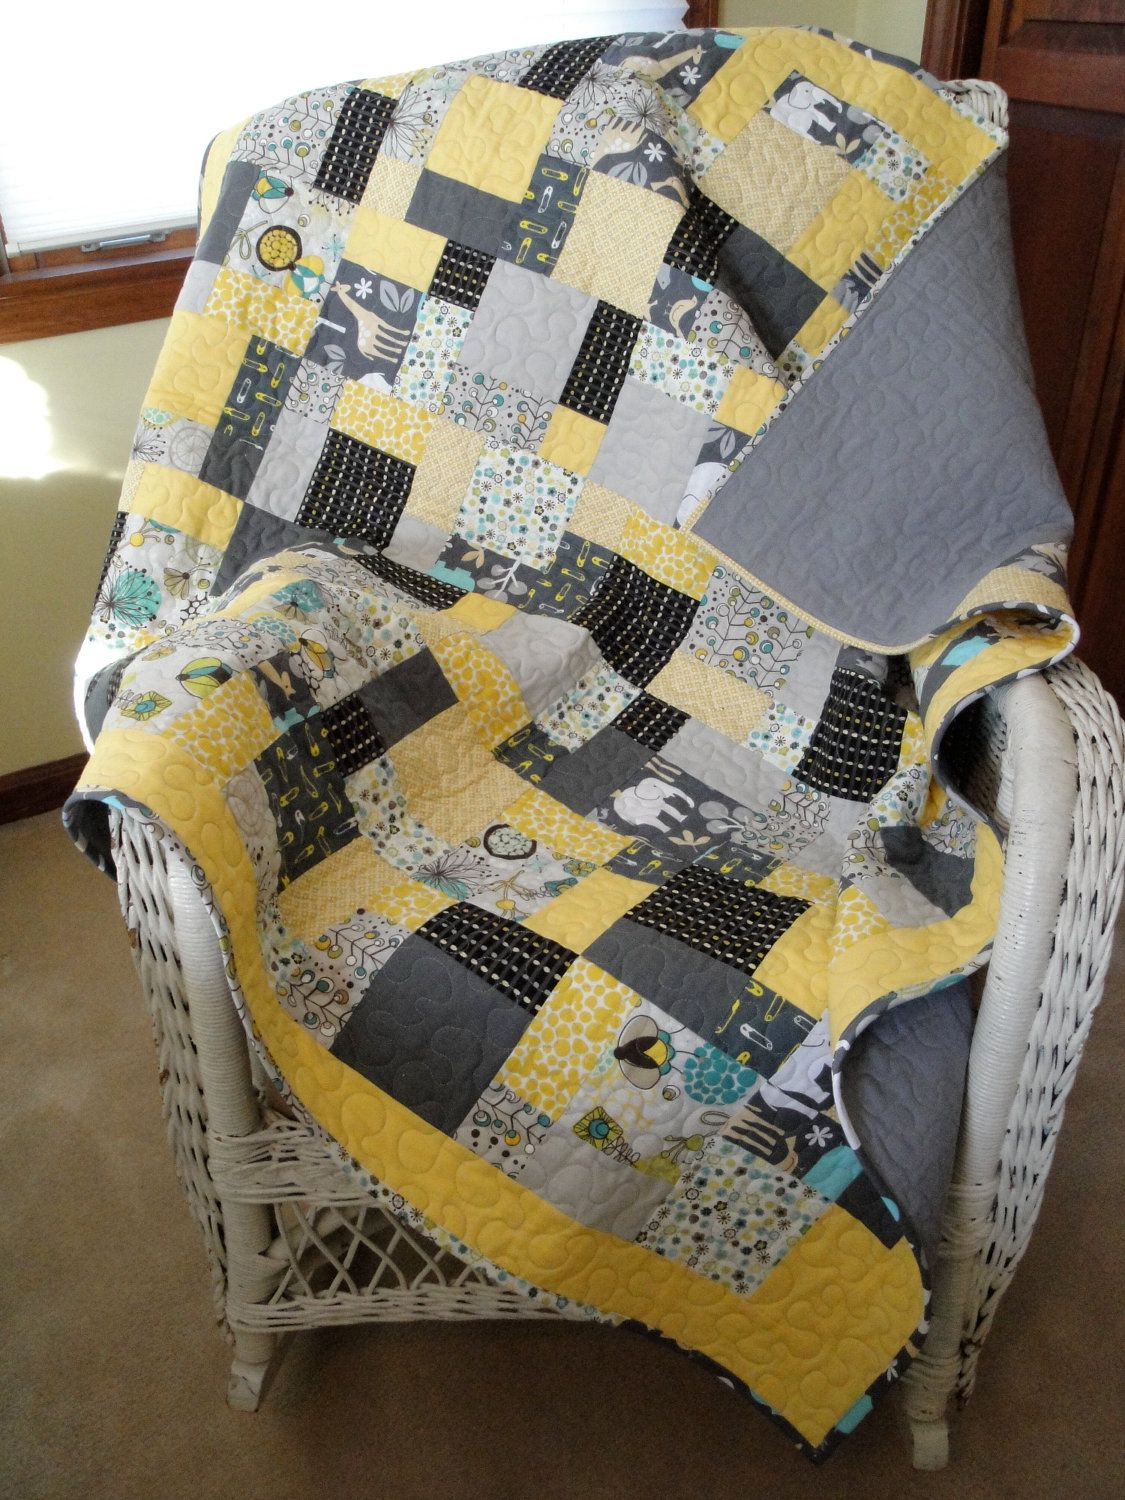 black and grey baby quilts on Etsy. |I believe this is the Yellow ... : yellow and gray baby quilt - Adamdwight.com